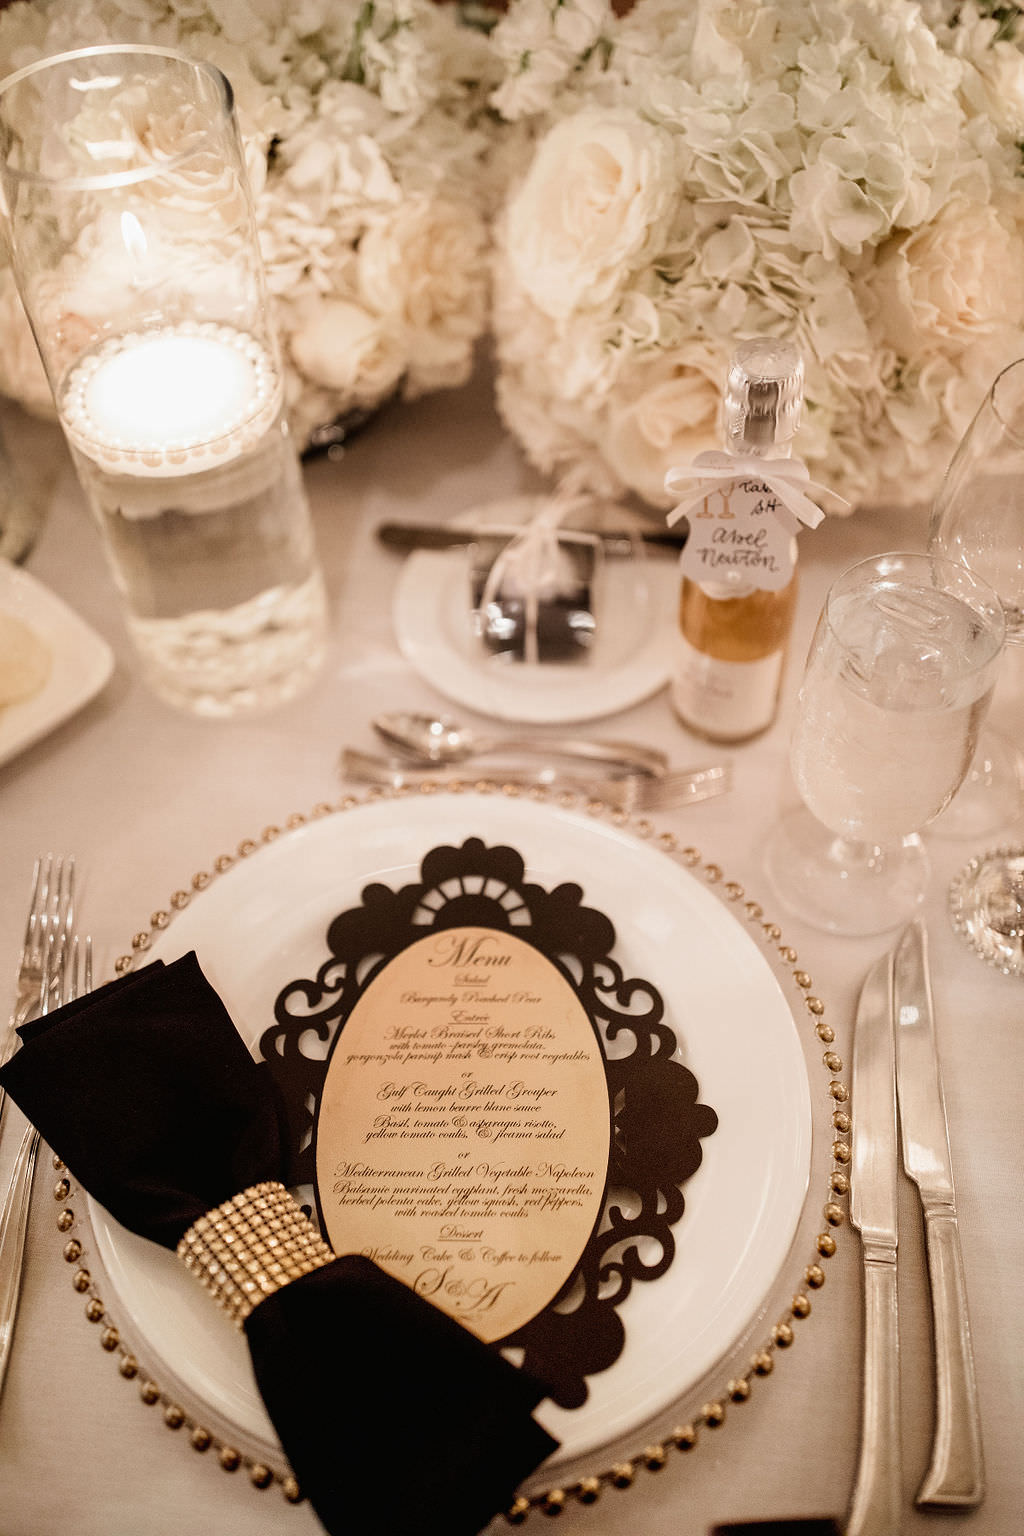 Classic Formal Wedding Reception Decor, Black Linen with Rhinestone Napkin Ring, Clear Glass and Gold Beaded Rim Charger, White, Ivory Floral Centerpiece, Floating Candle in Hurricane Glass Vase, Custom Lace Style Menu Stationery